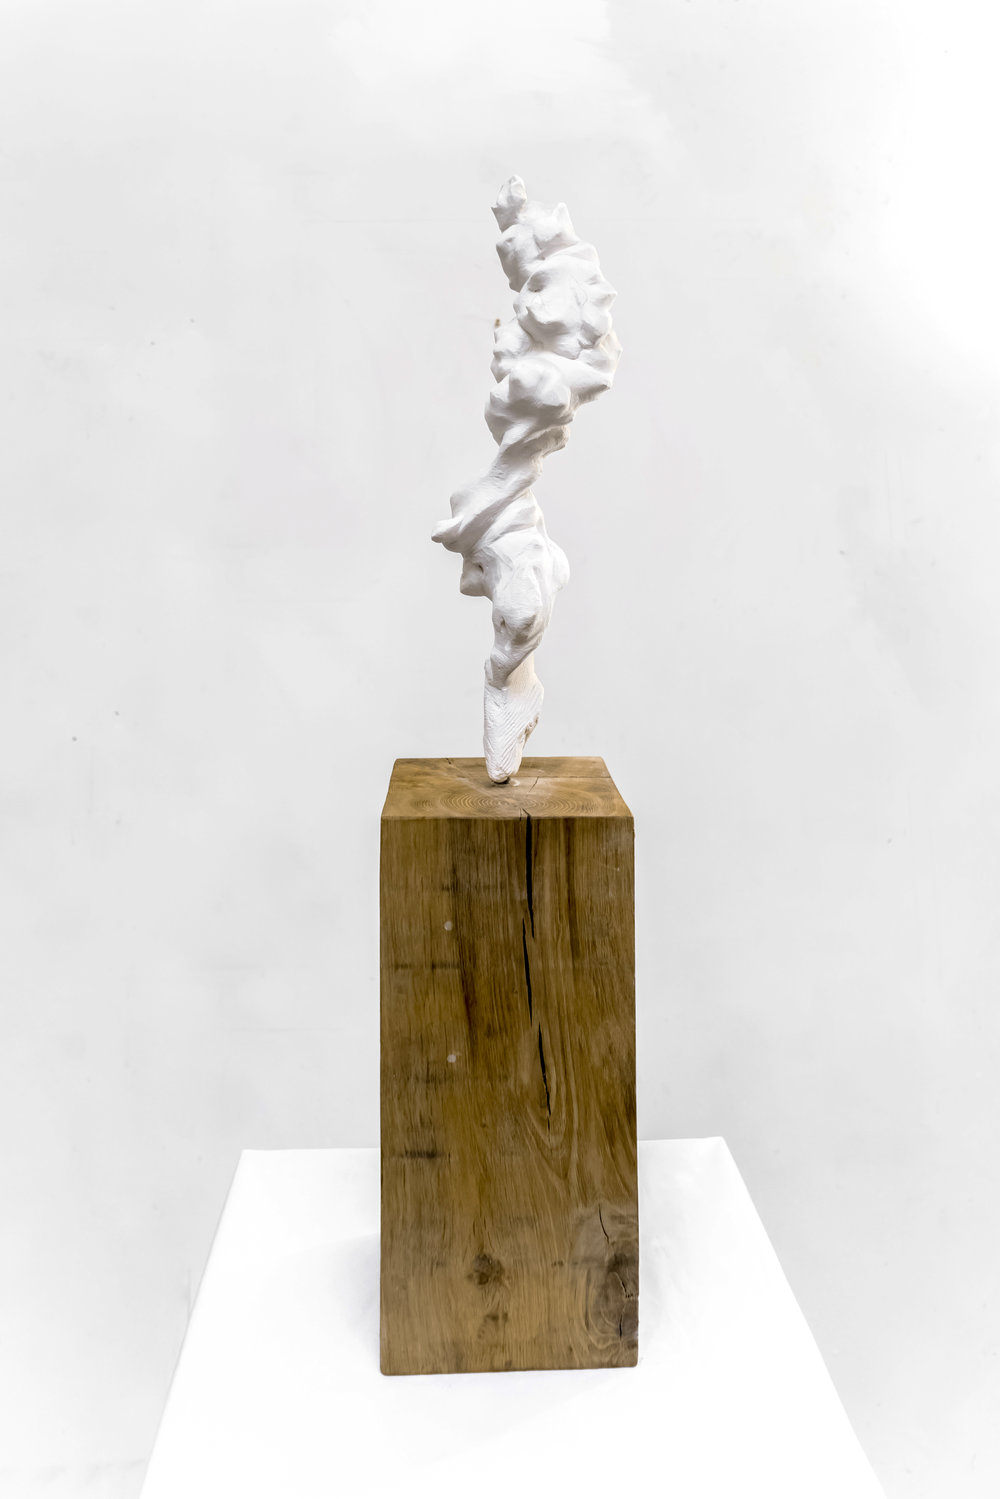 Small Totem White No.1 (Carved) , 2017, Painted bronze and oak wood, 70 x 10 x 10 cm